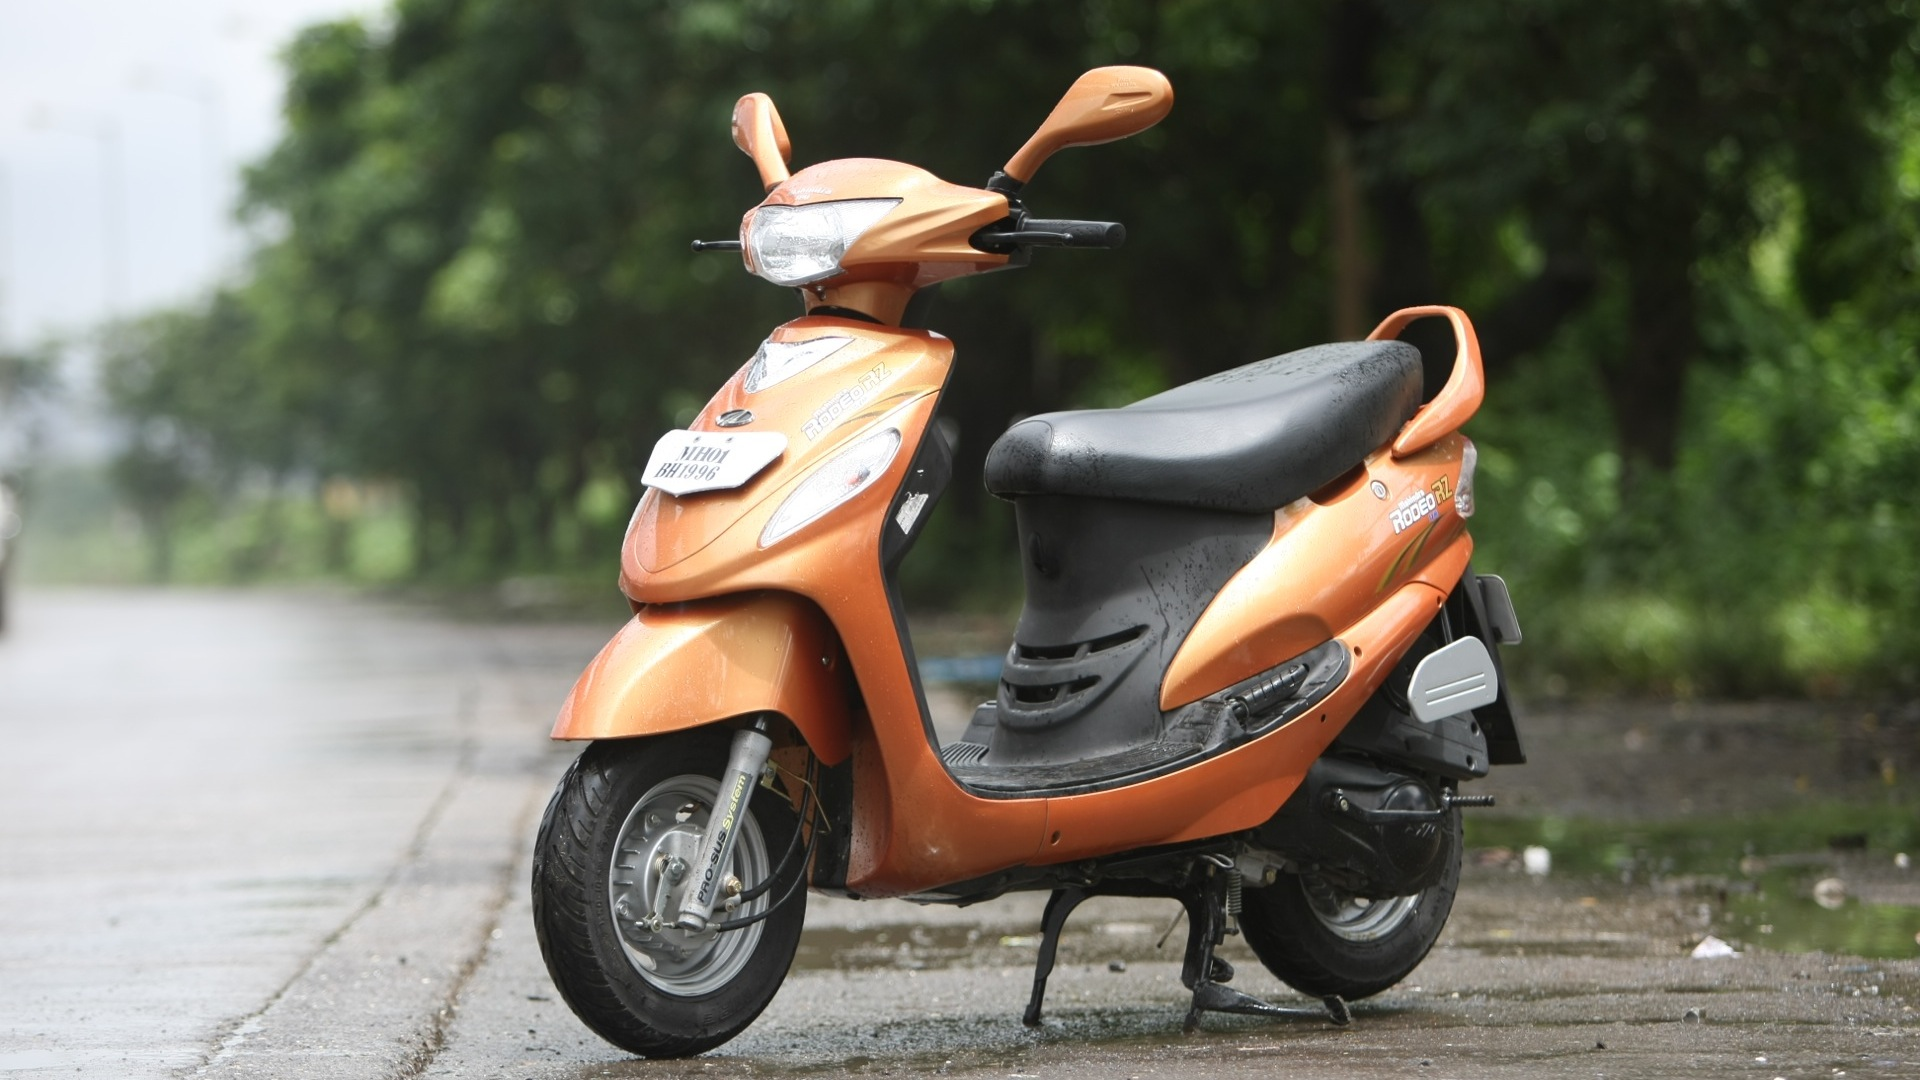 Ray Price Honda >> Mahindra Rodeo 2013 RZ - Price, Mileage, Reviews, Specification, Gallery - Overdrive